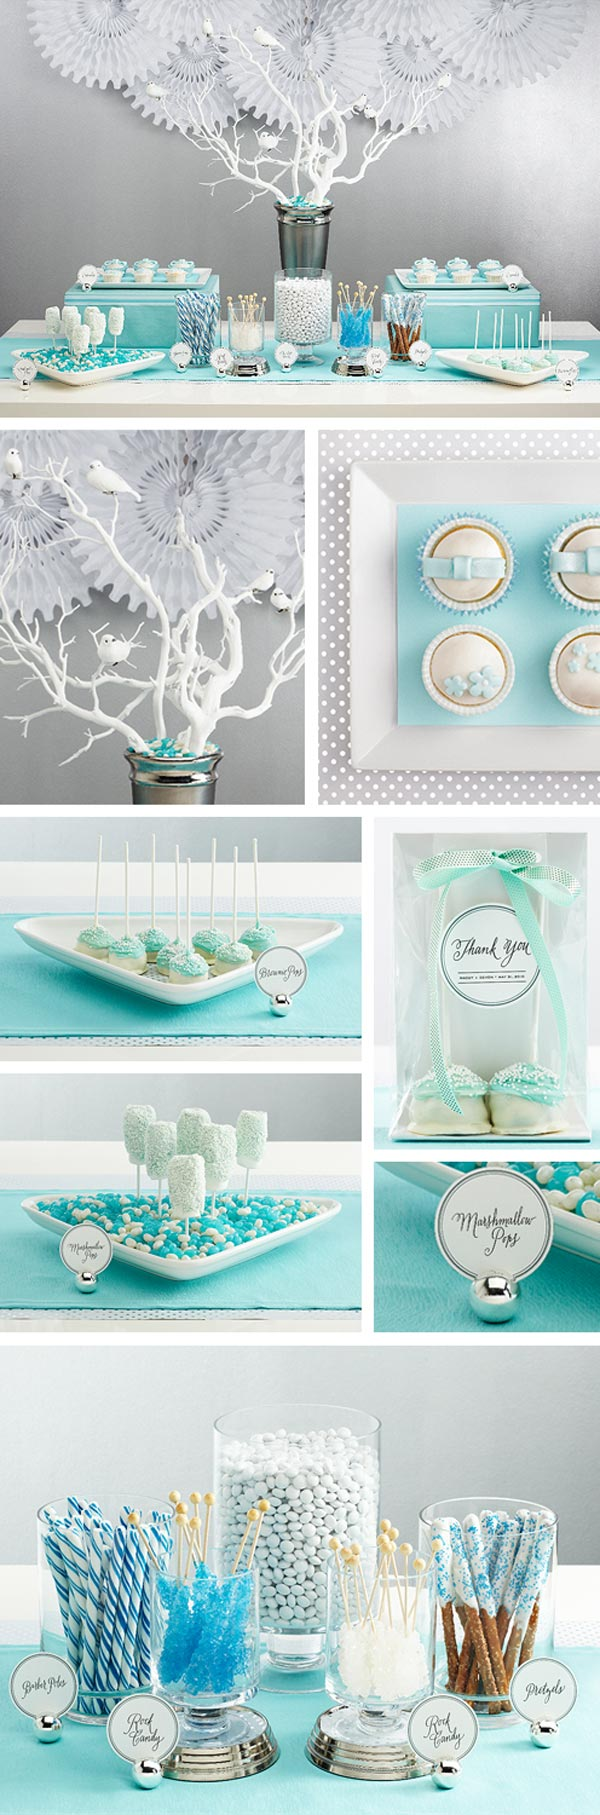 Baby shower decor ideas arhitektura for Baby shower decoration ideas boy